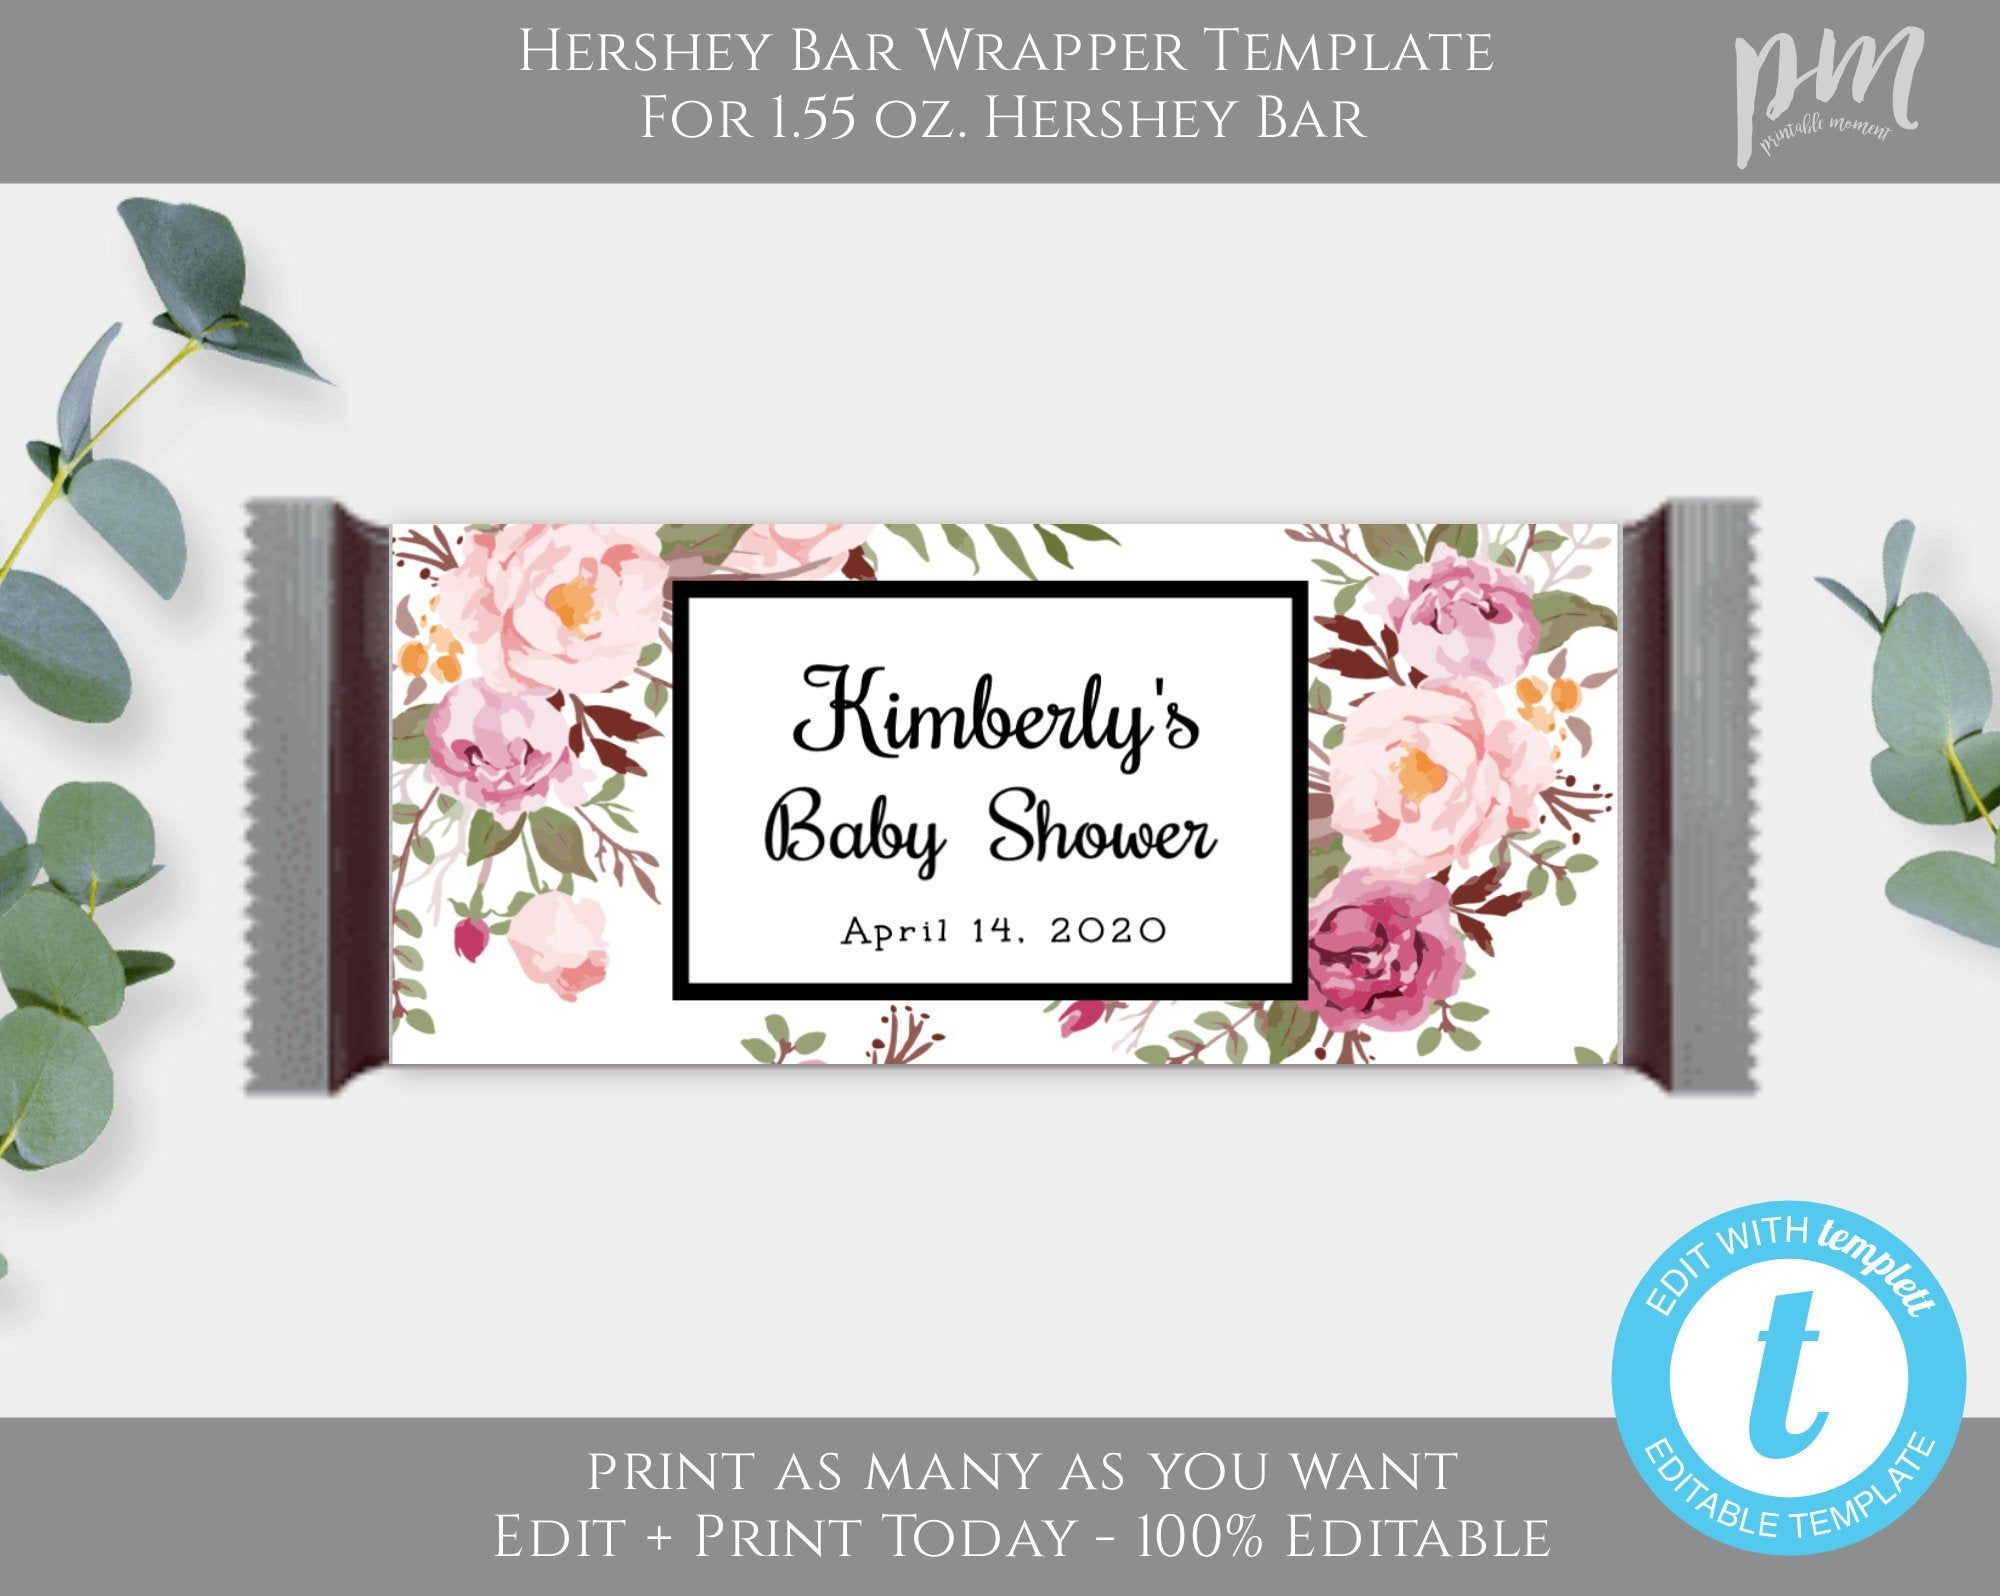 Candy Bar Wrapper Template Hershey Bar Wrapper Chocolate